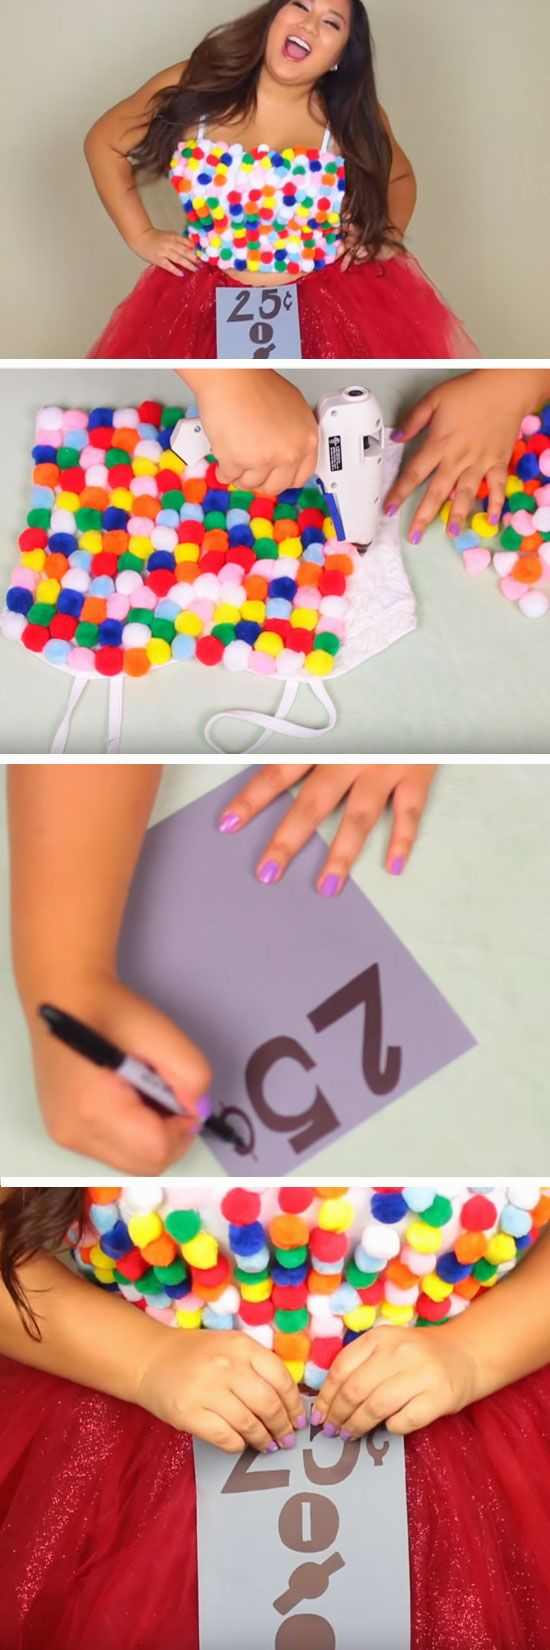 26 diy halloween costume ideas for teen girls - Ideas For Girl Halloween Costumes